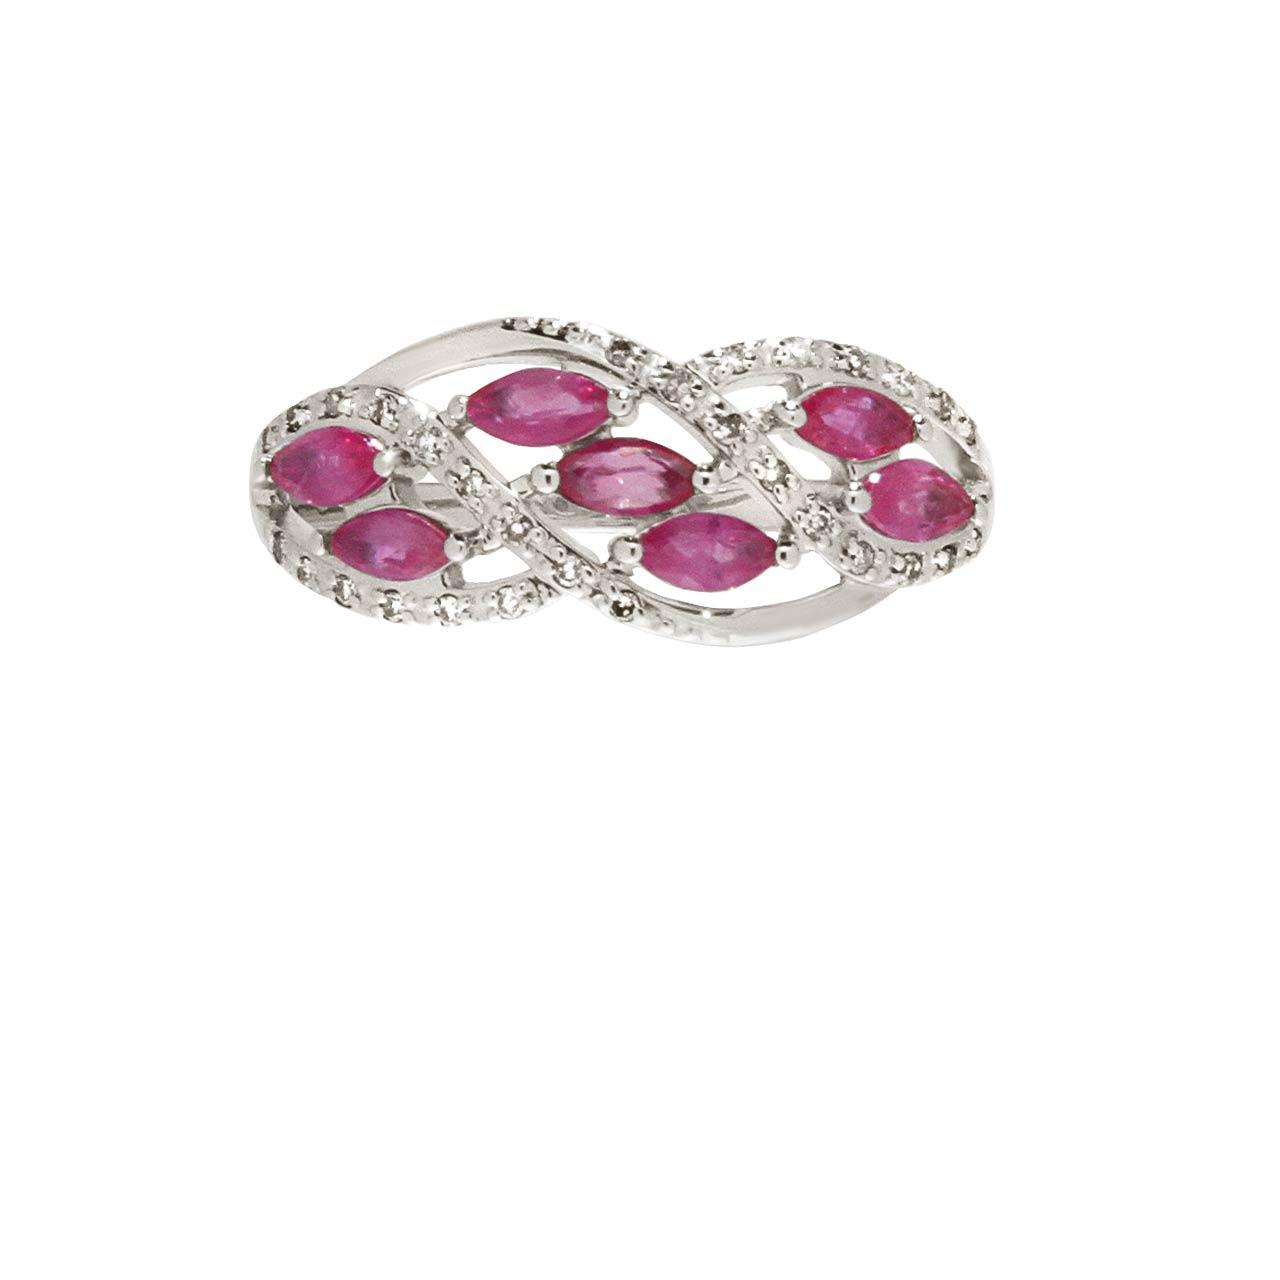 7 Marquise rubies  Russian ring. View 2.